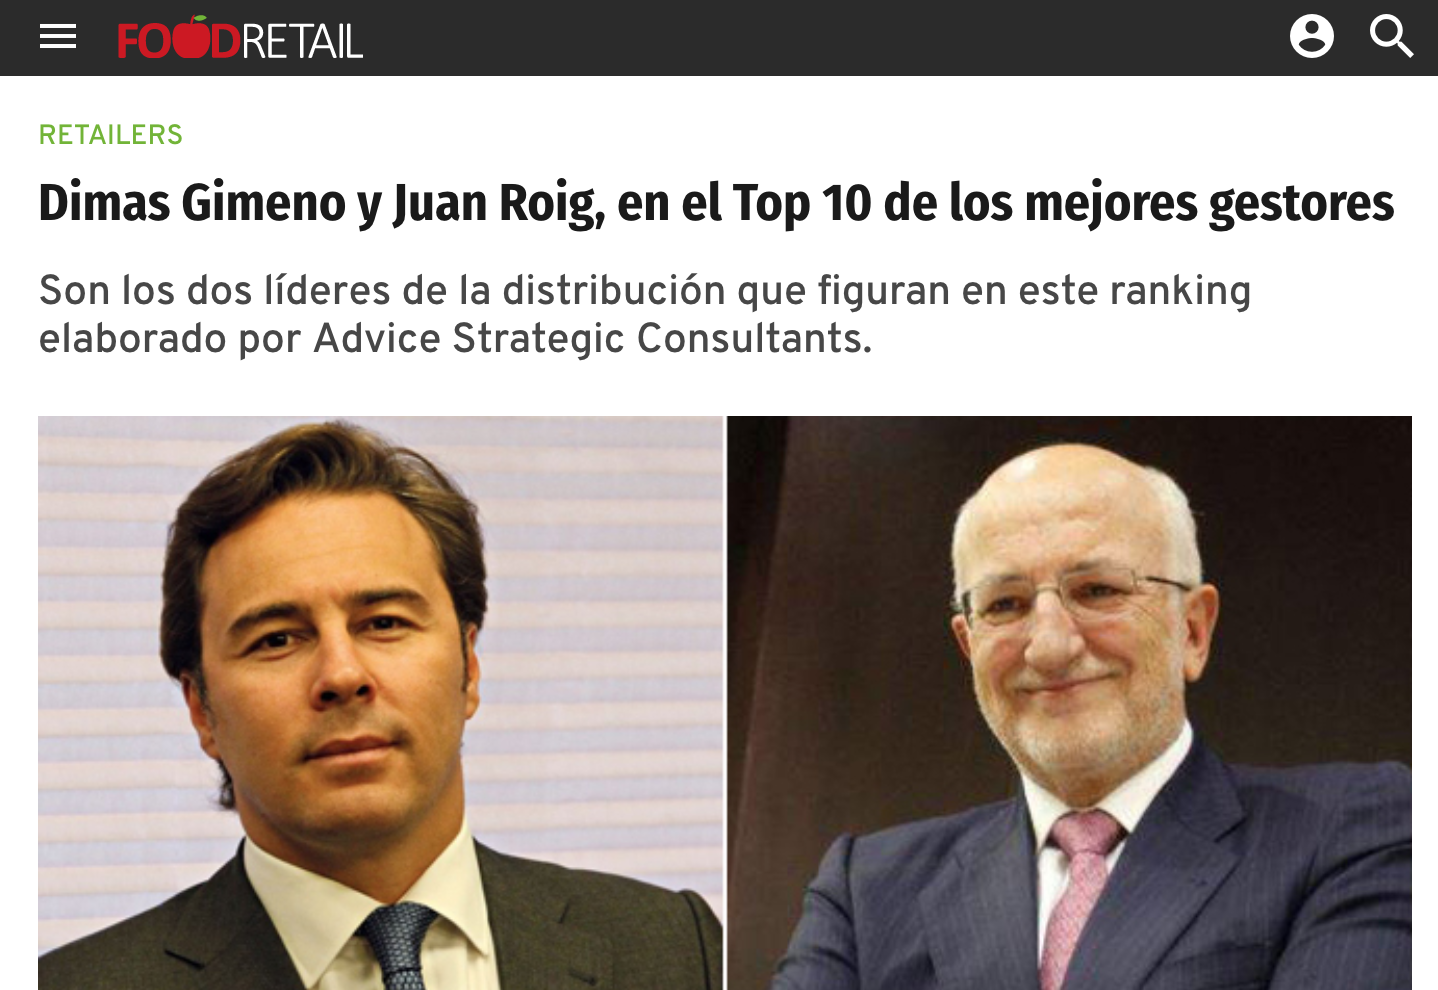 Noticia sobre Estudio Advice Éxito Empresarial en Food Retail